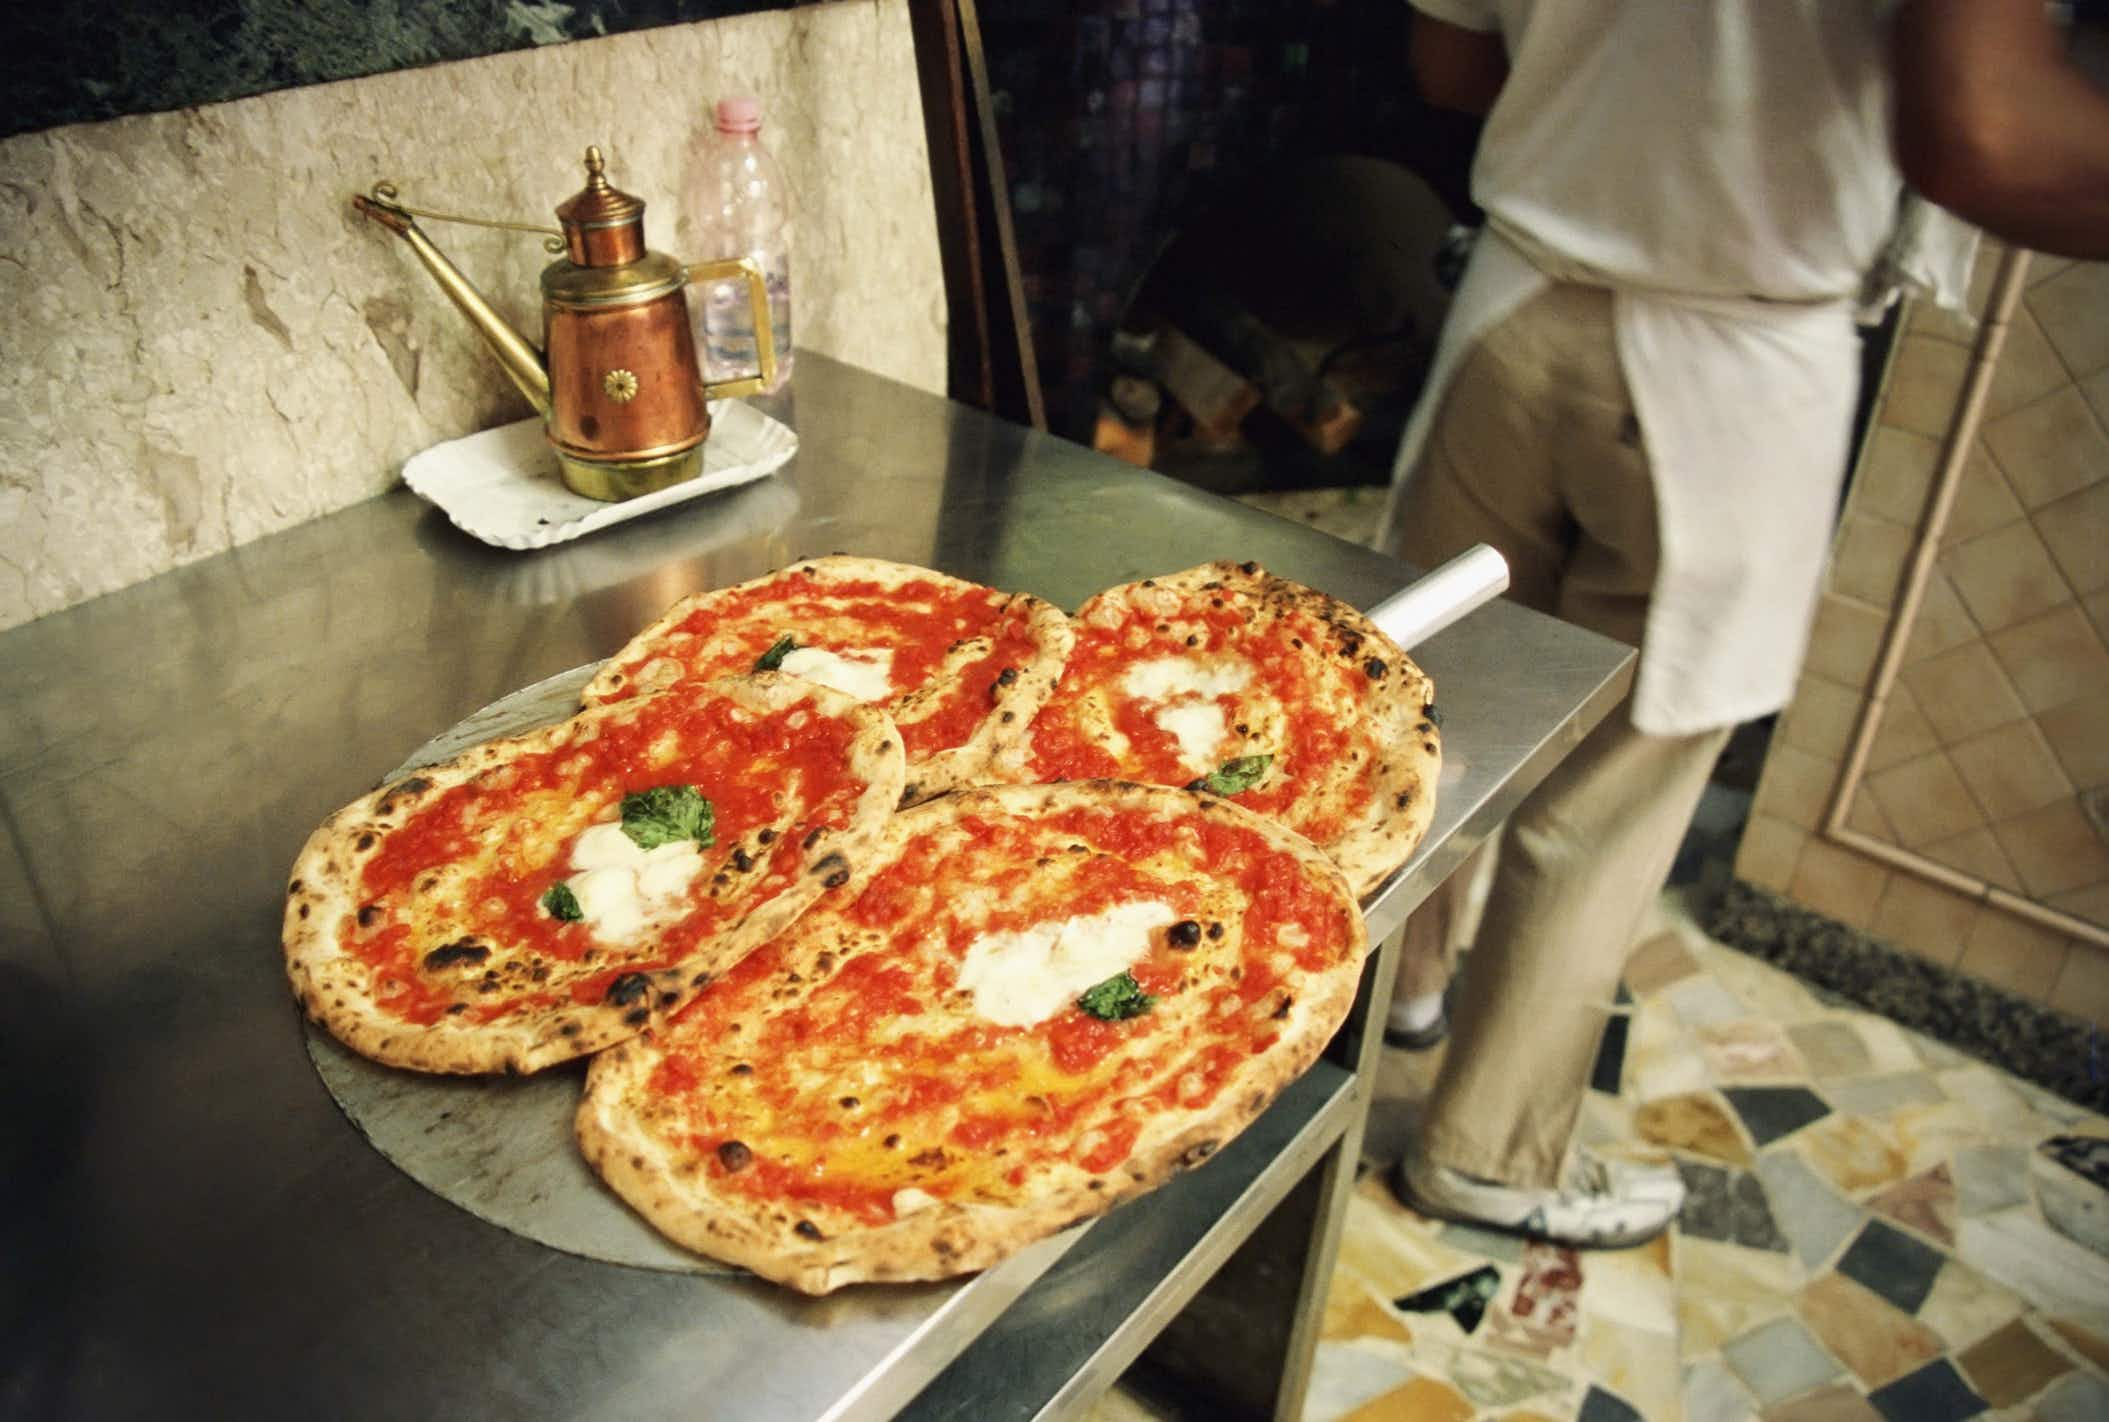 Naples' famous pizza-making process has received intangible heritage status